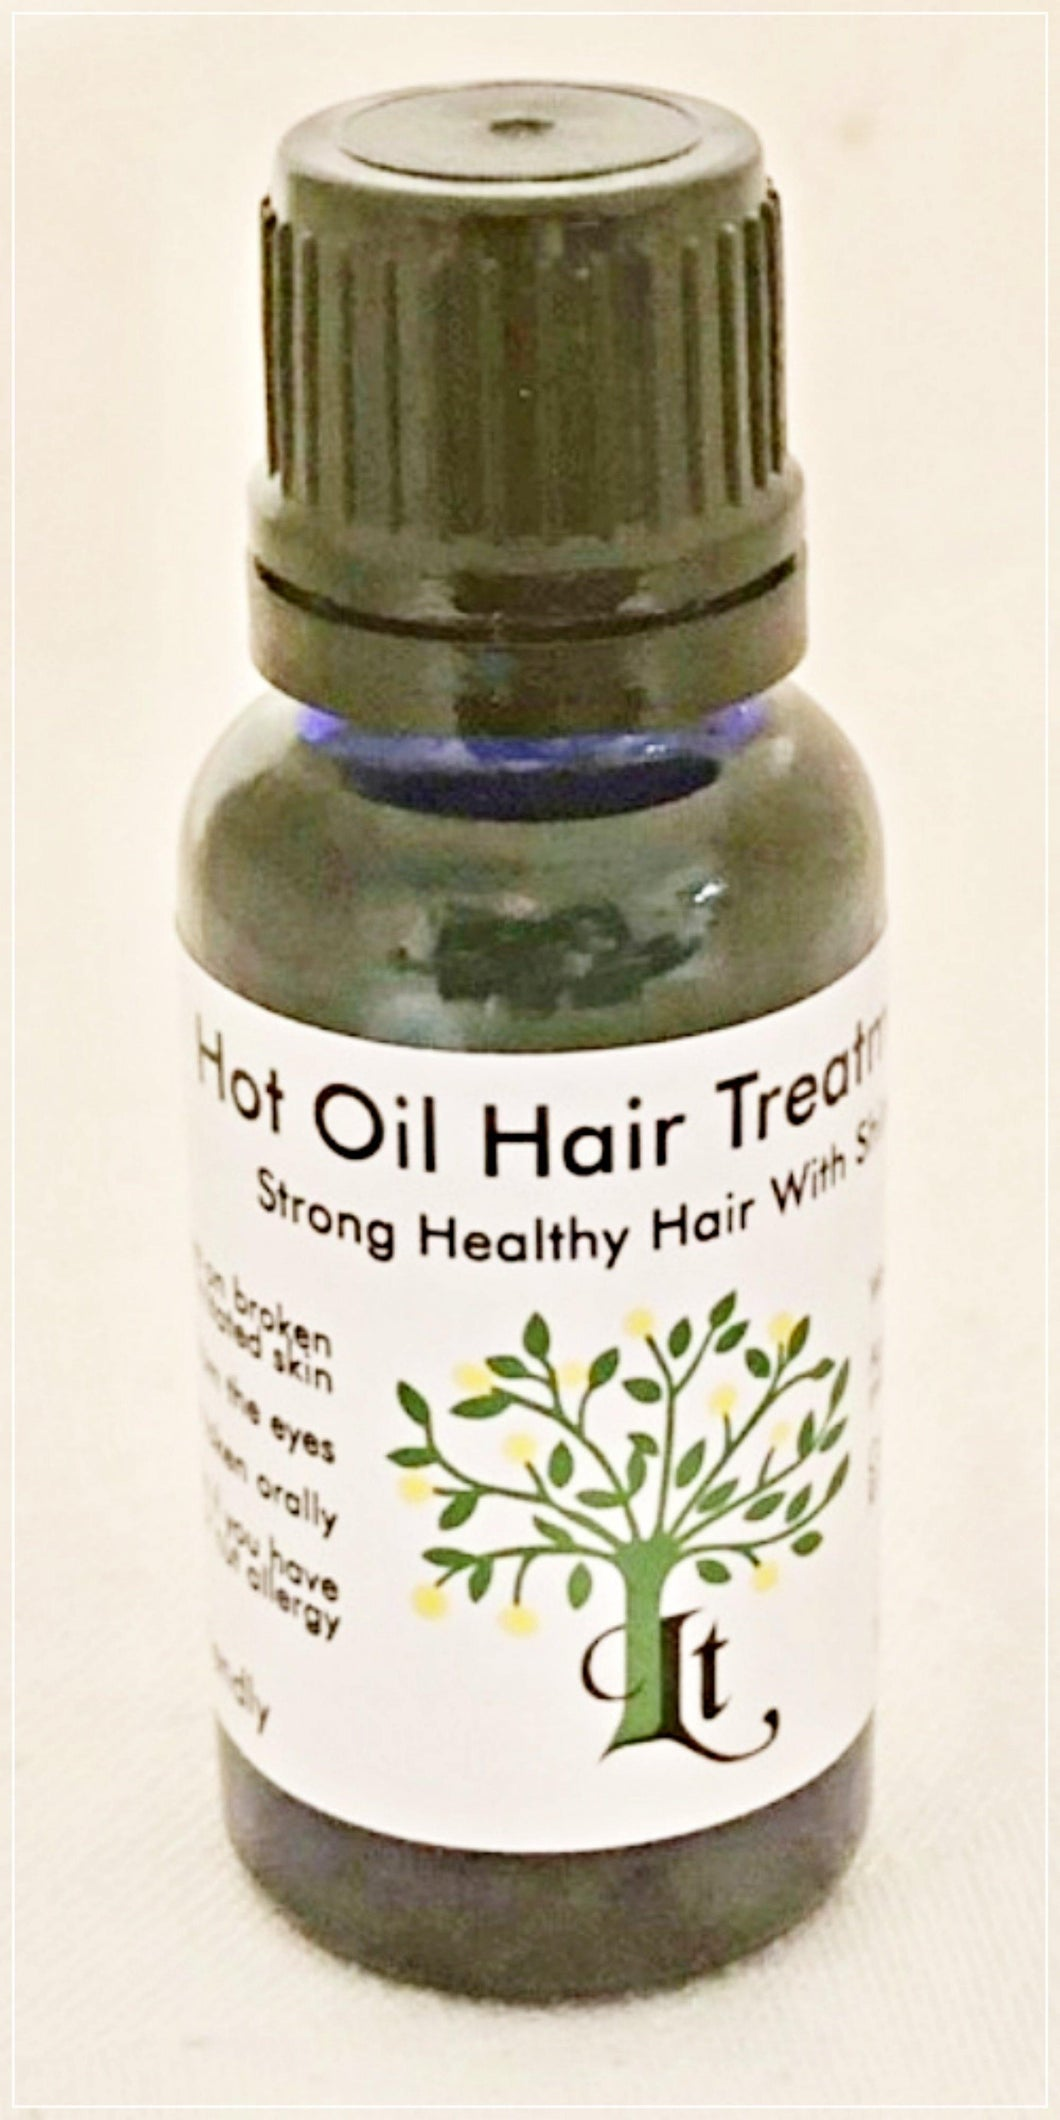 Natural Hot Oil Hair Treatment Prevents Dryness, Breakage And Dullness, For Strong Healthy Hair With Shine.